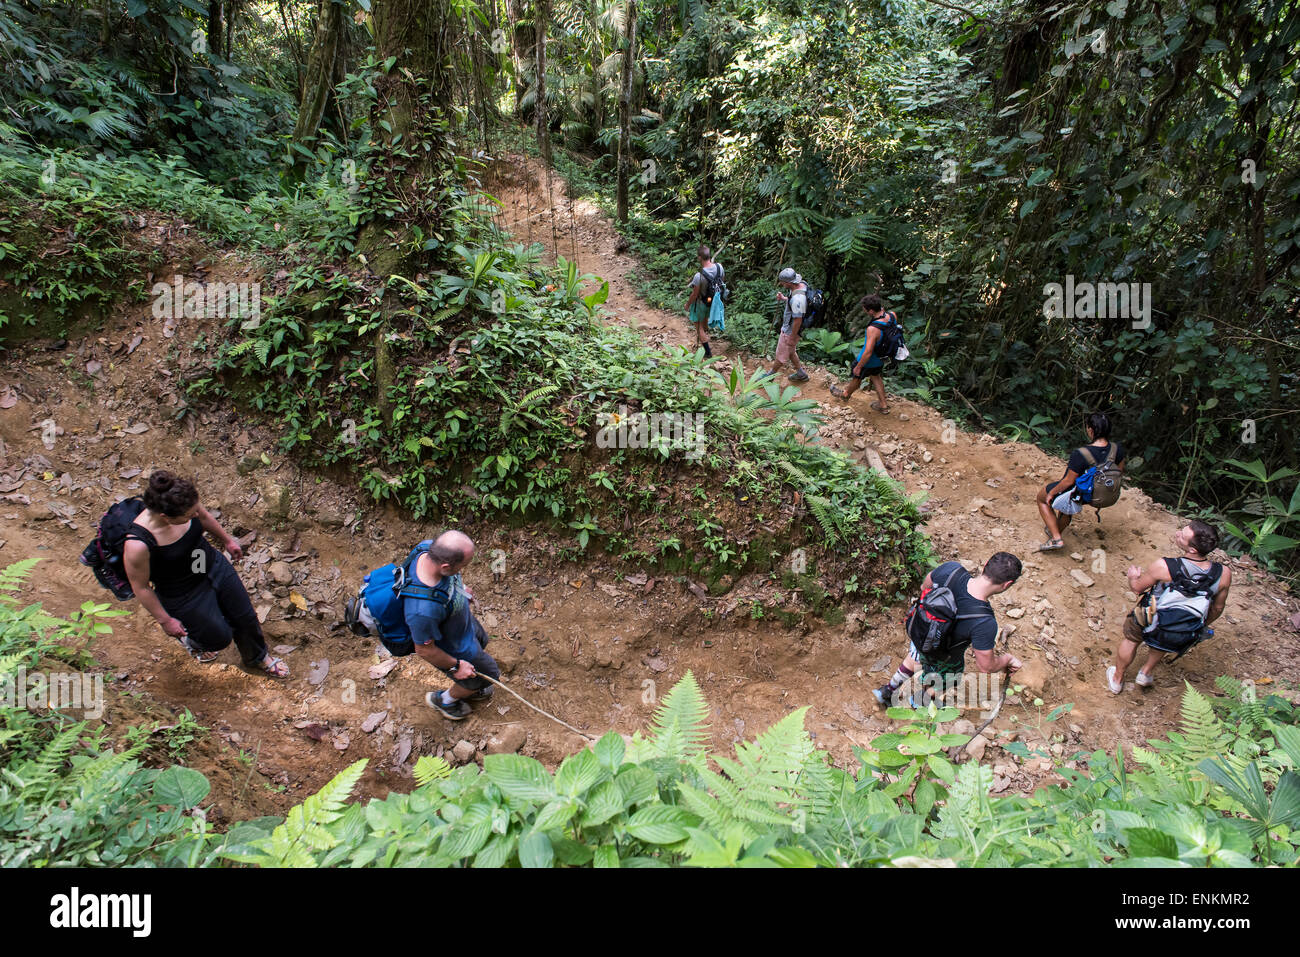 Tourists hiking through Lost City (Ciudad Perdida) trek Sierra Nevada mountains Santa Marta Colombia - Stock Image